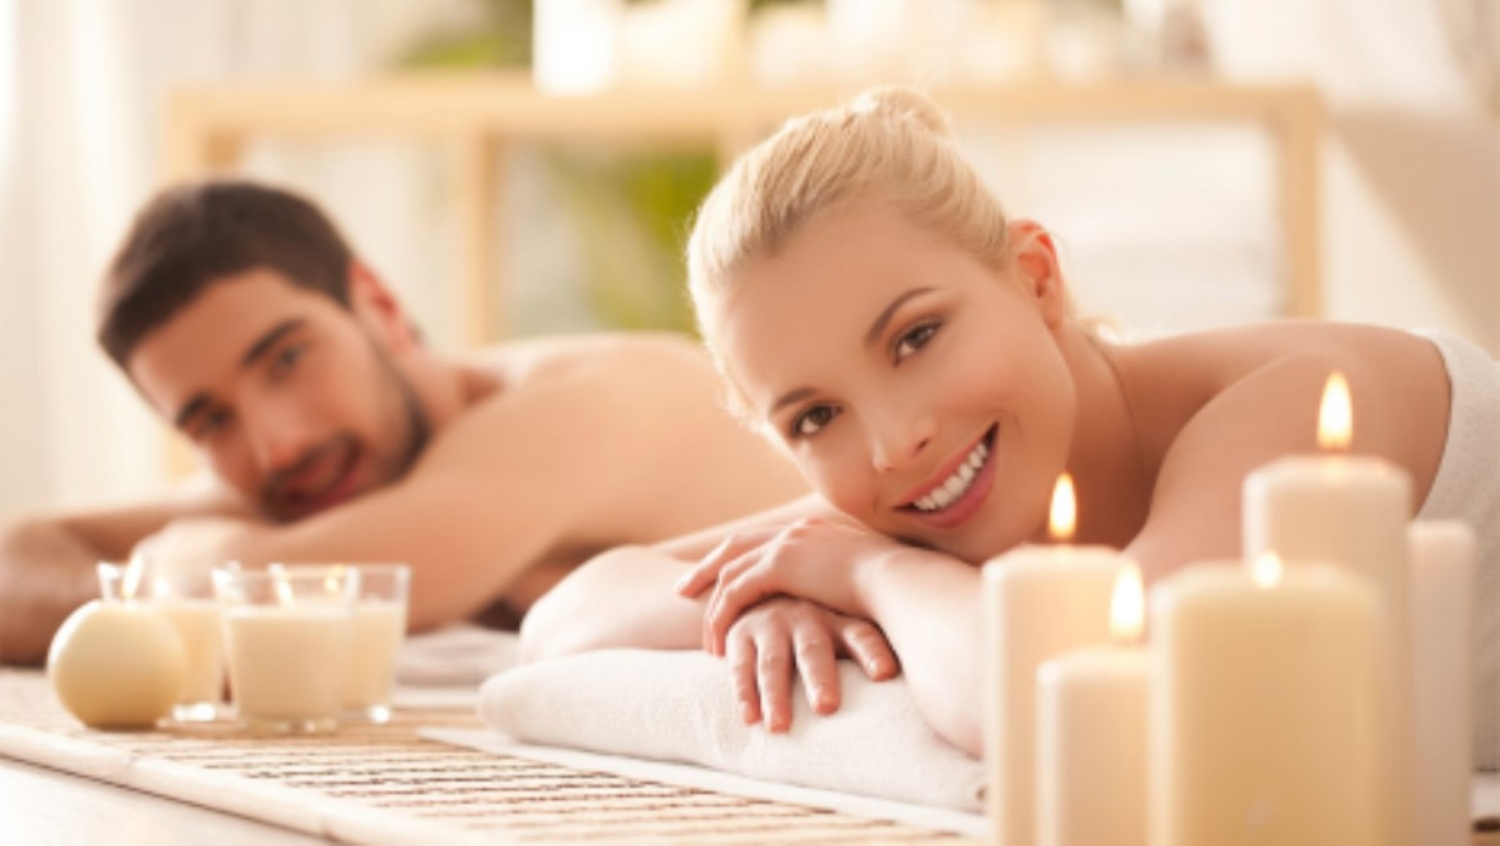 We specialize in COUPLES MASSAGE and have several Couples & Family Rooms available. All of our massages can be combined for a customized COUPLES PACKAGE at no additional costs. Contact our friendly customer service representative for details.